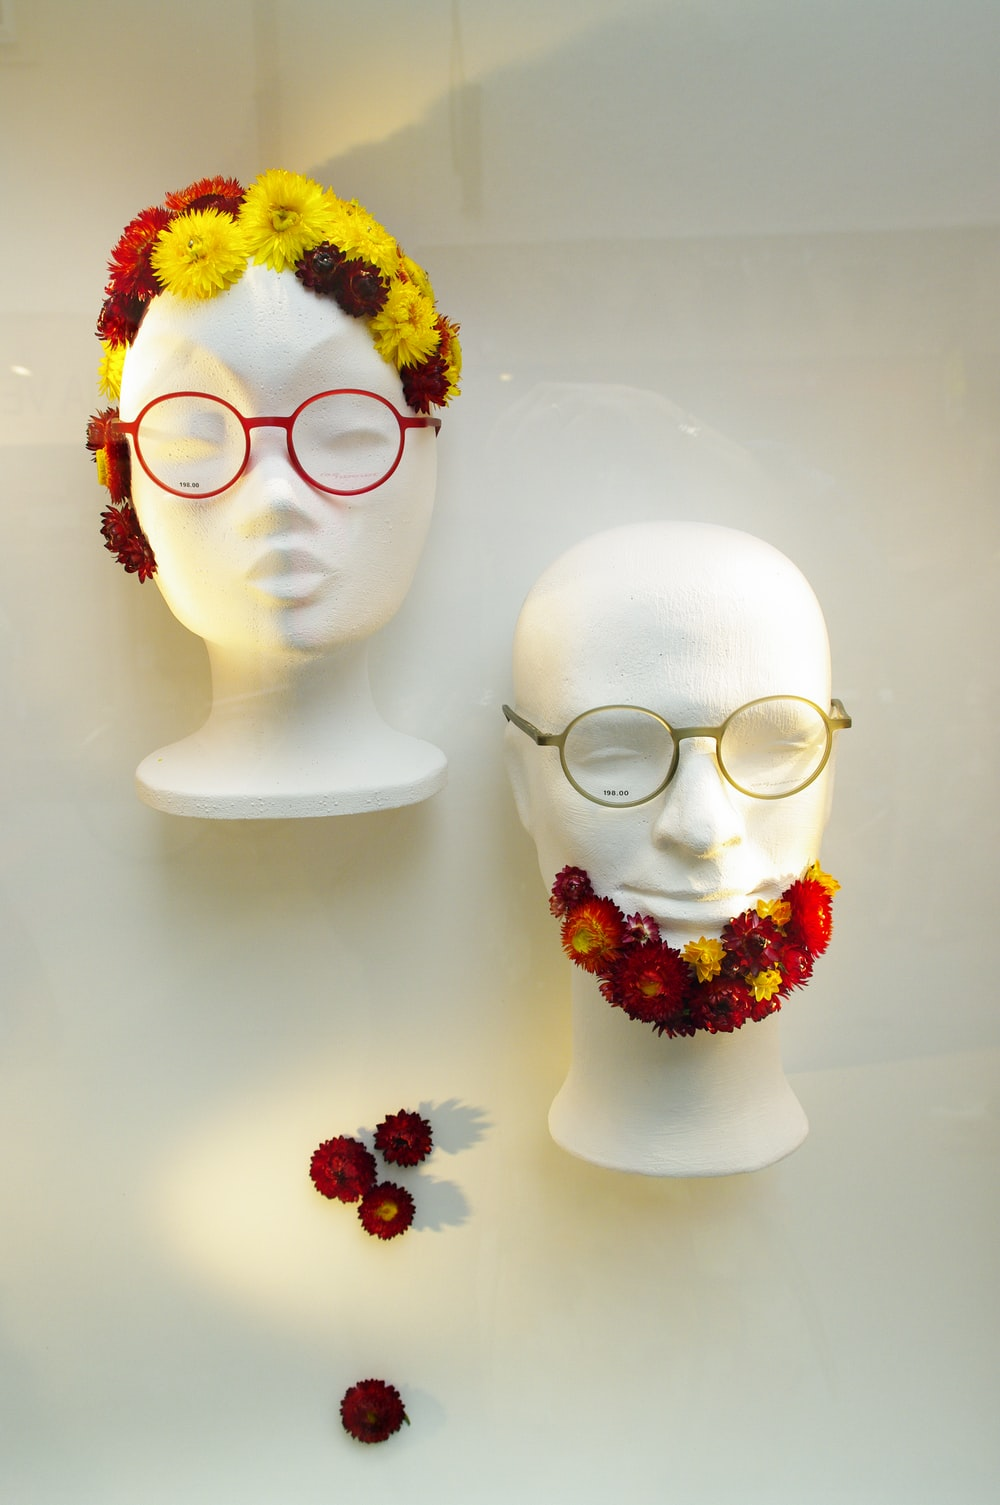 white ceramic figurine with yellow and red flower